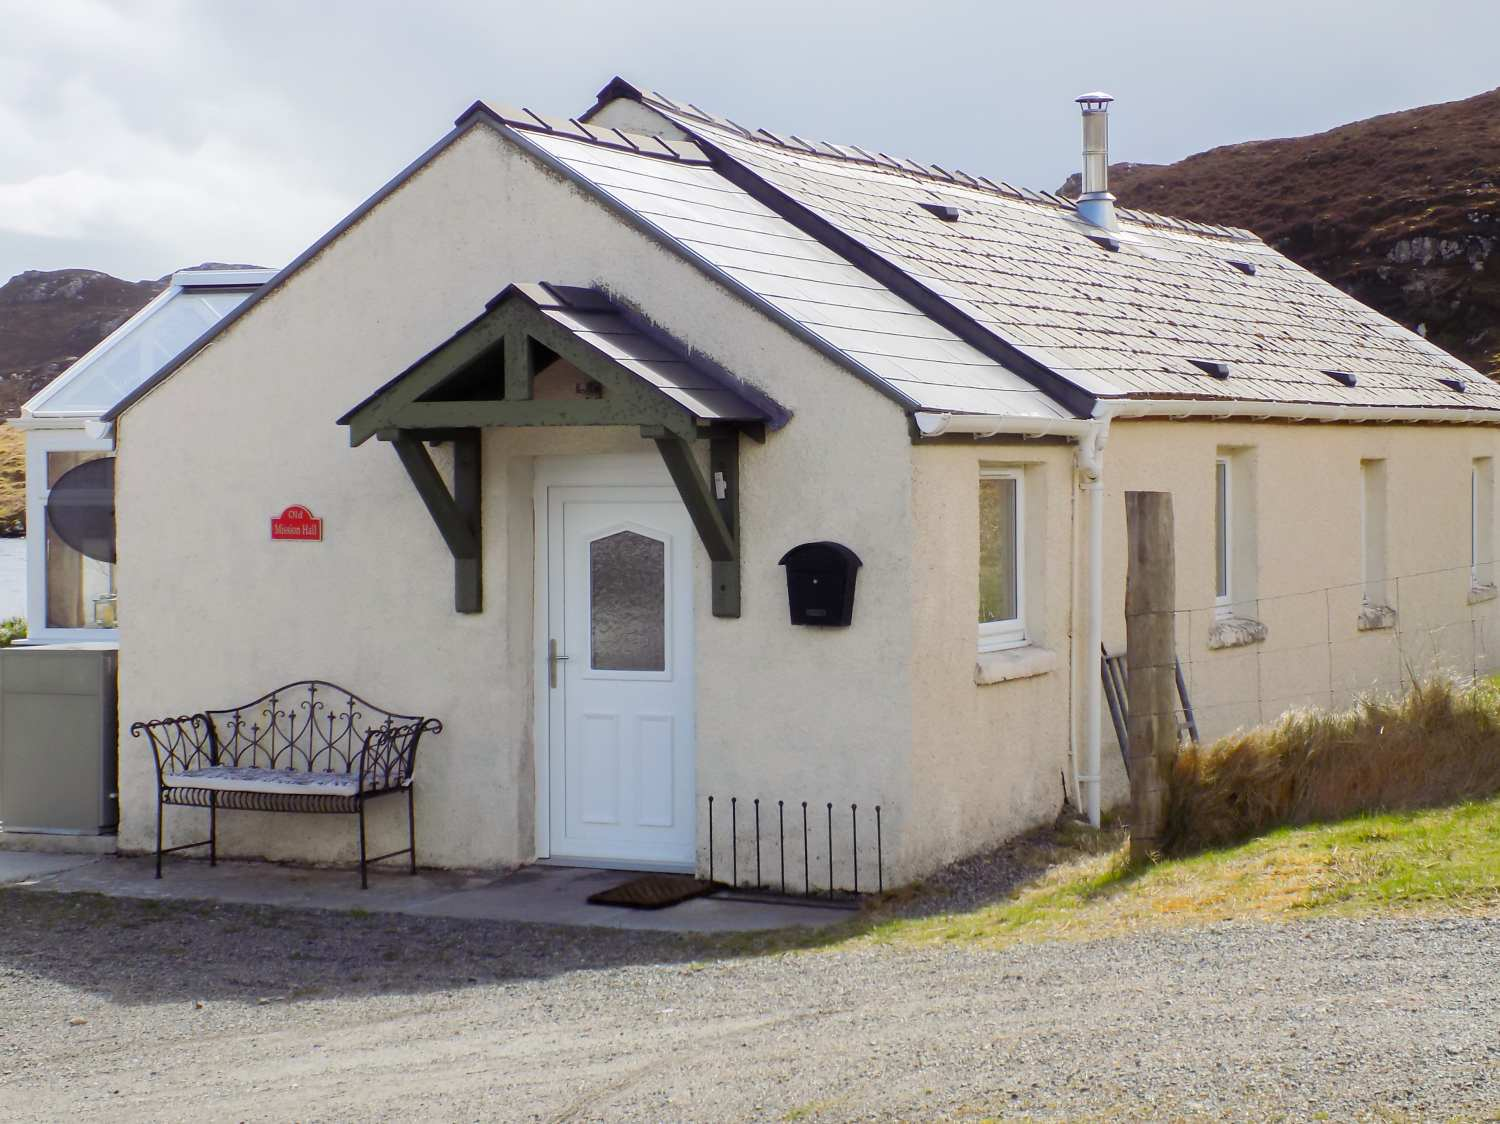 restored in uk with scotland cottages beautifully years sale post and blog gems over stunning quiet location ii for historically classical house img hd old grade rural country top listed a georgian